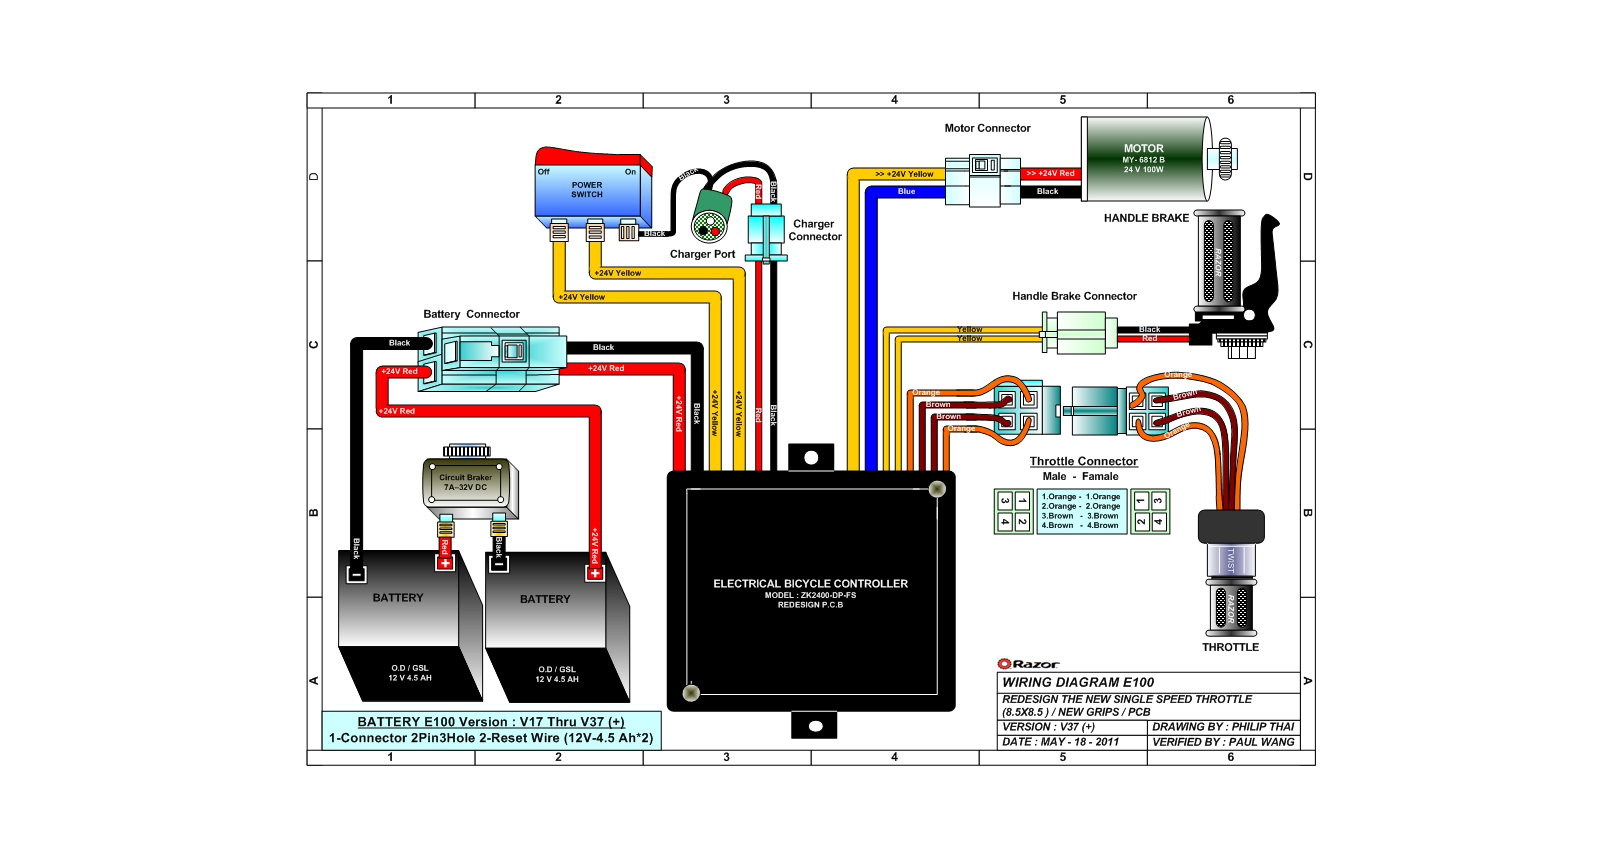 e100 (versions 37+) wiring diagram